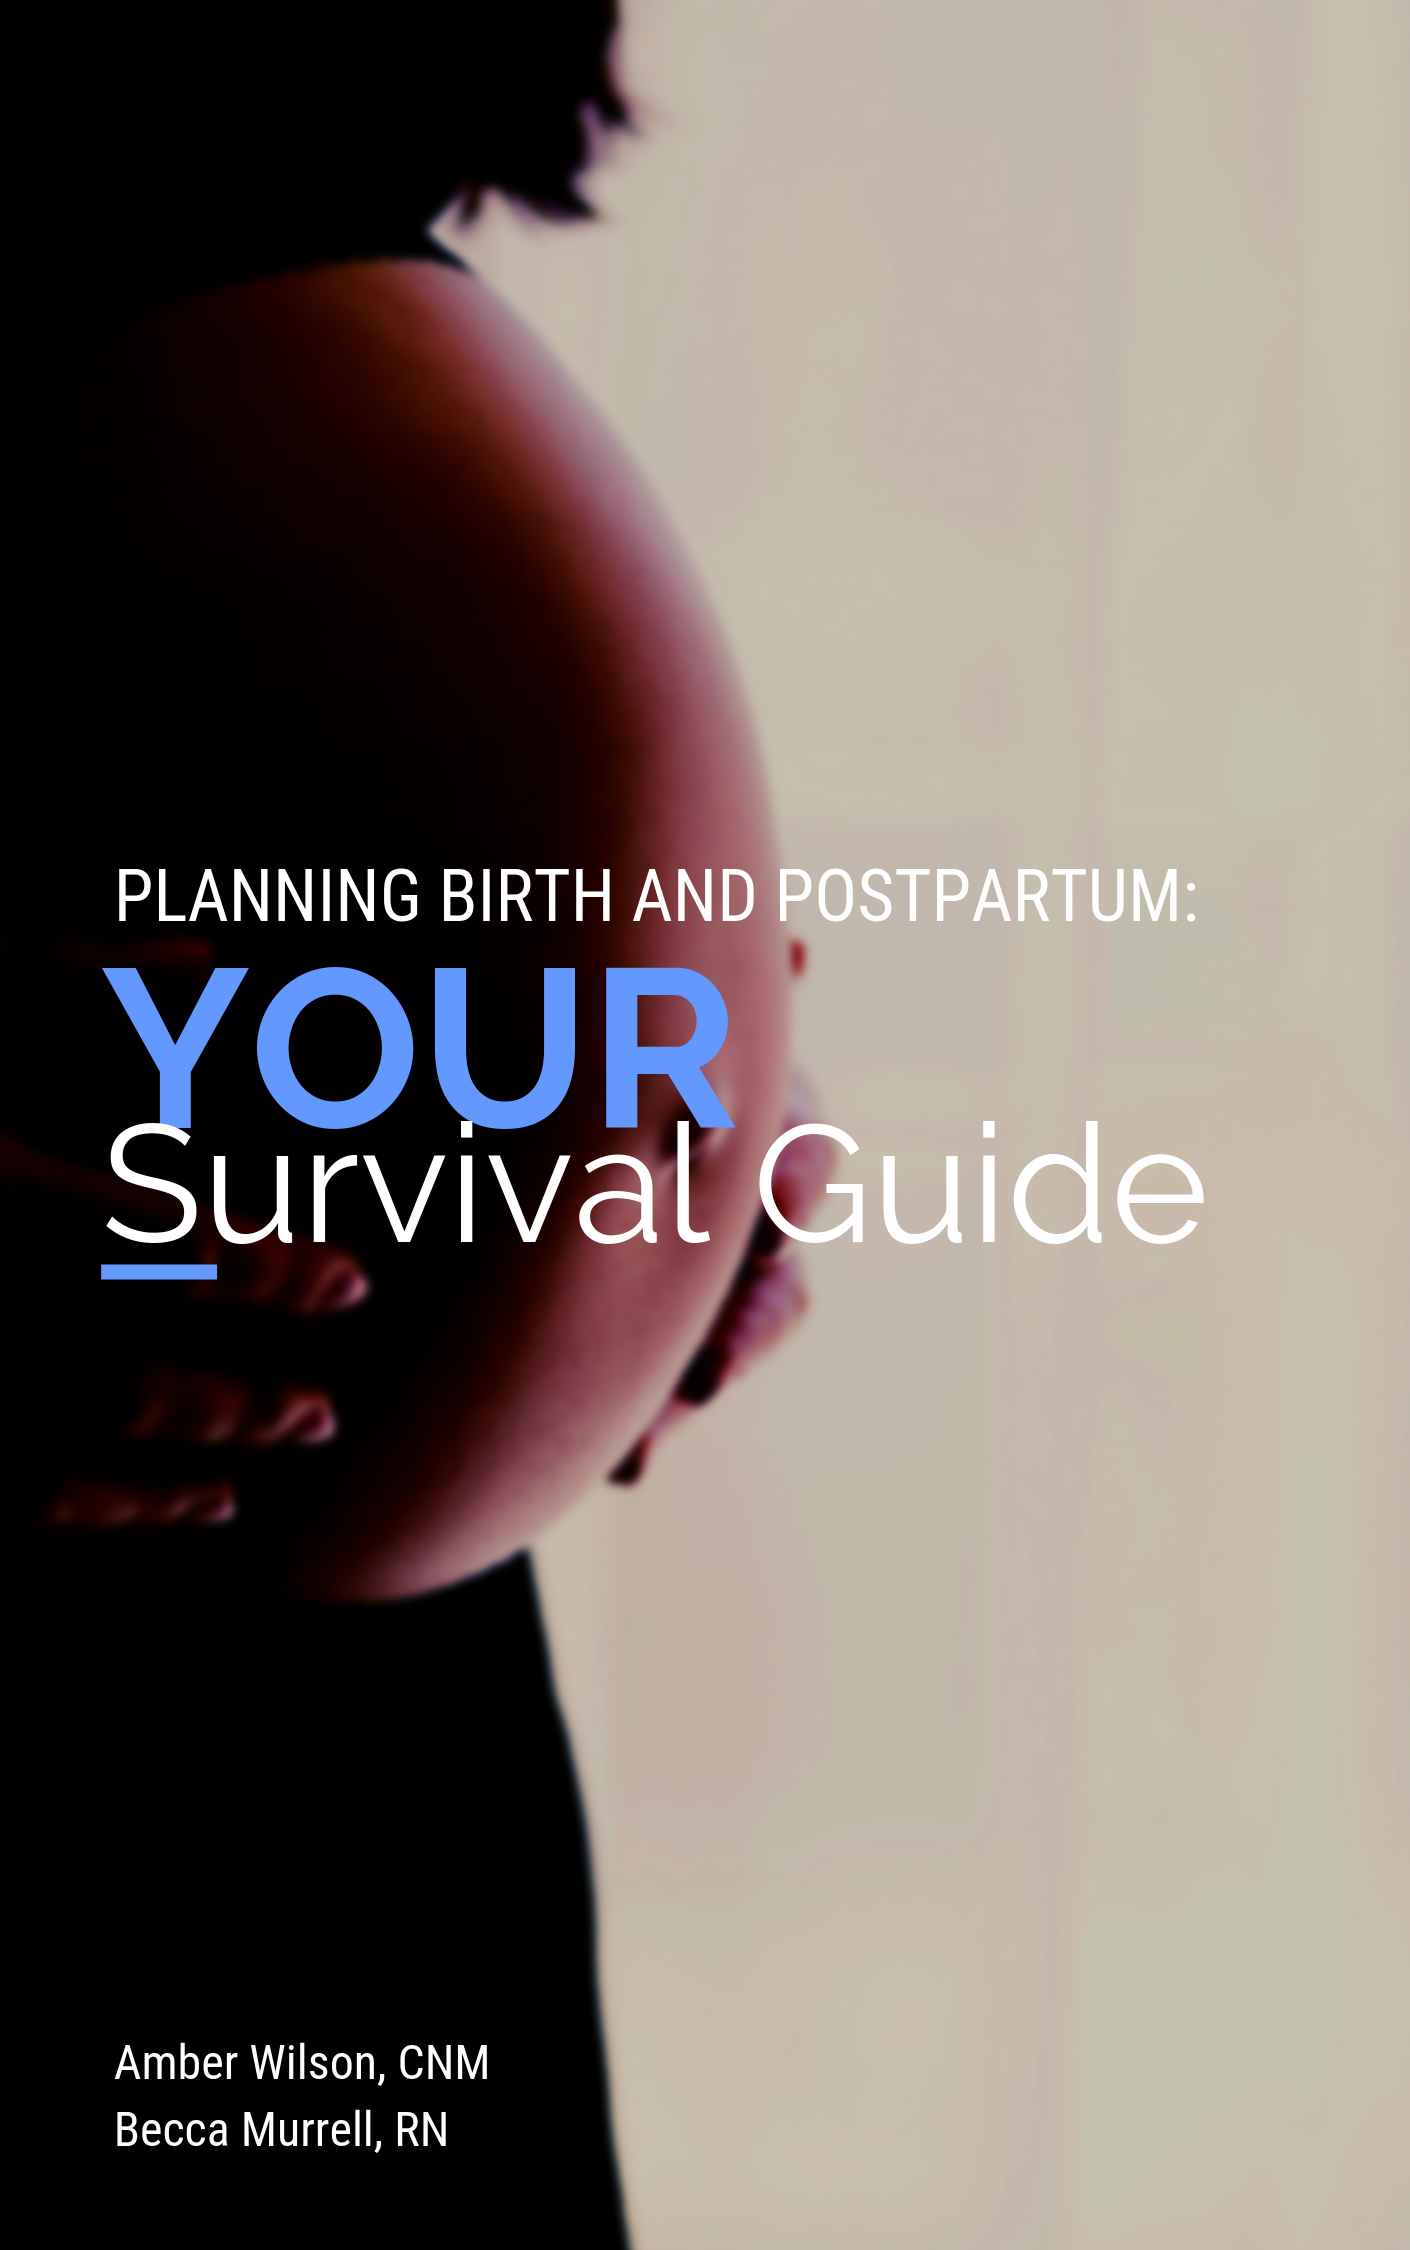 Your survival guide.png